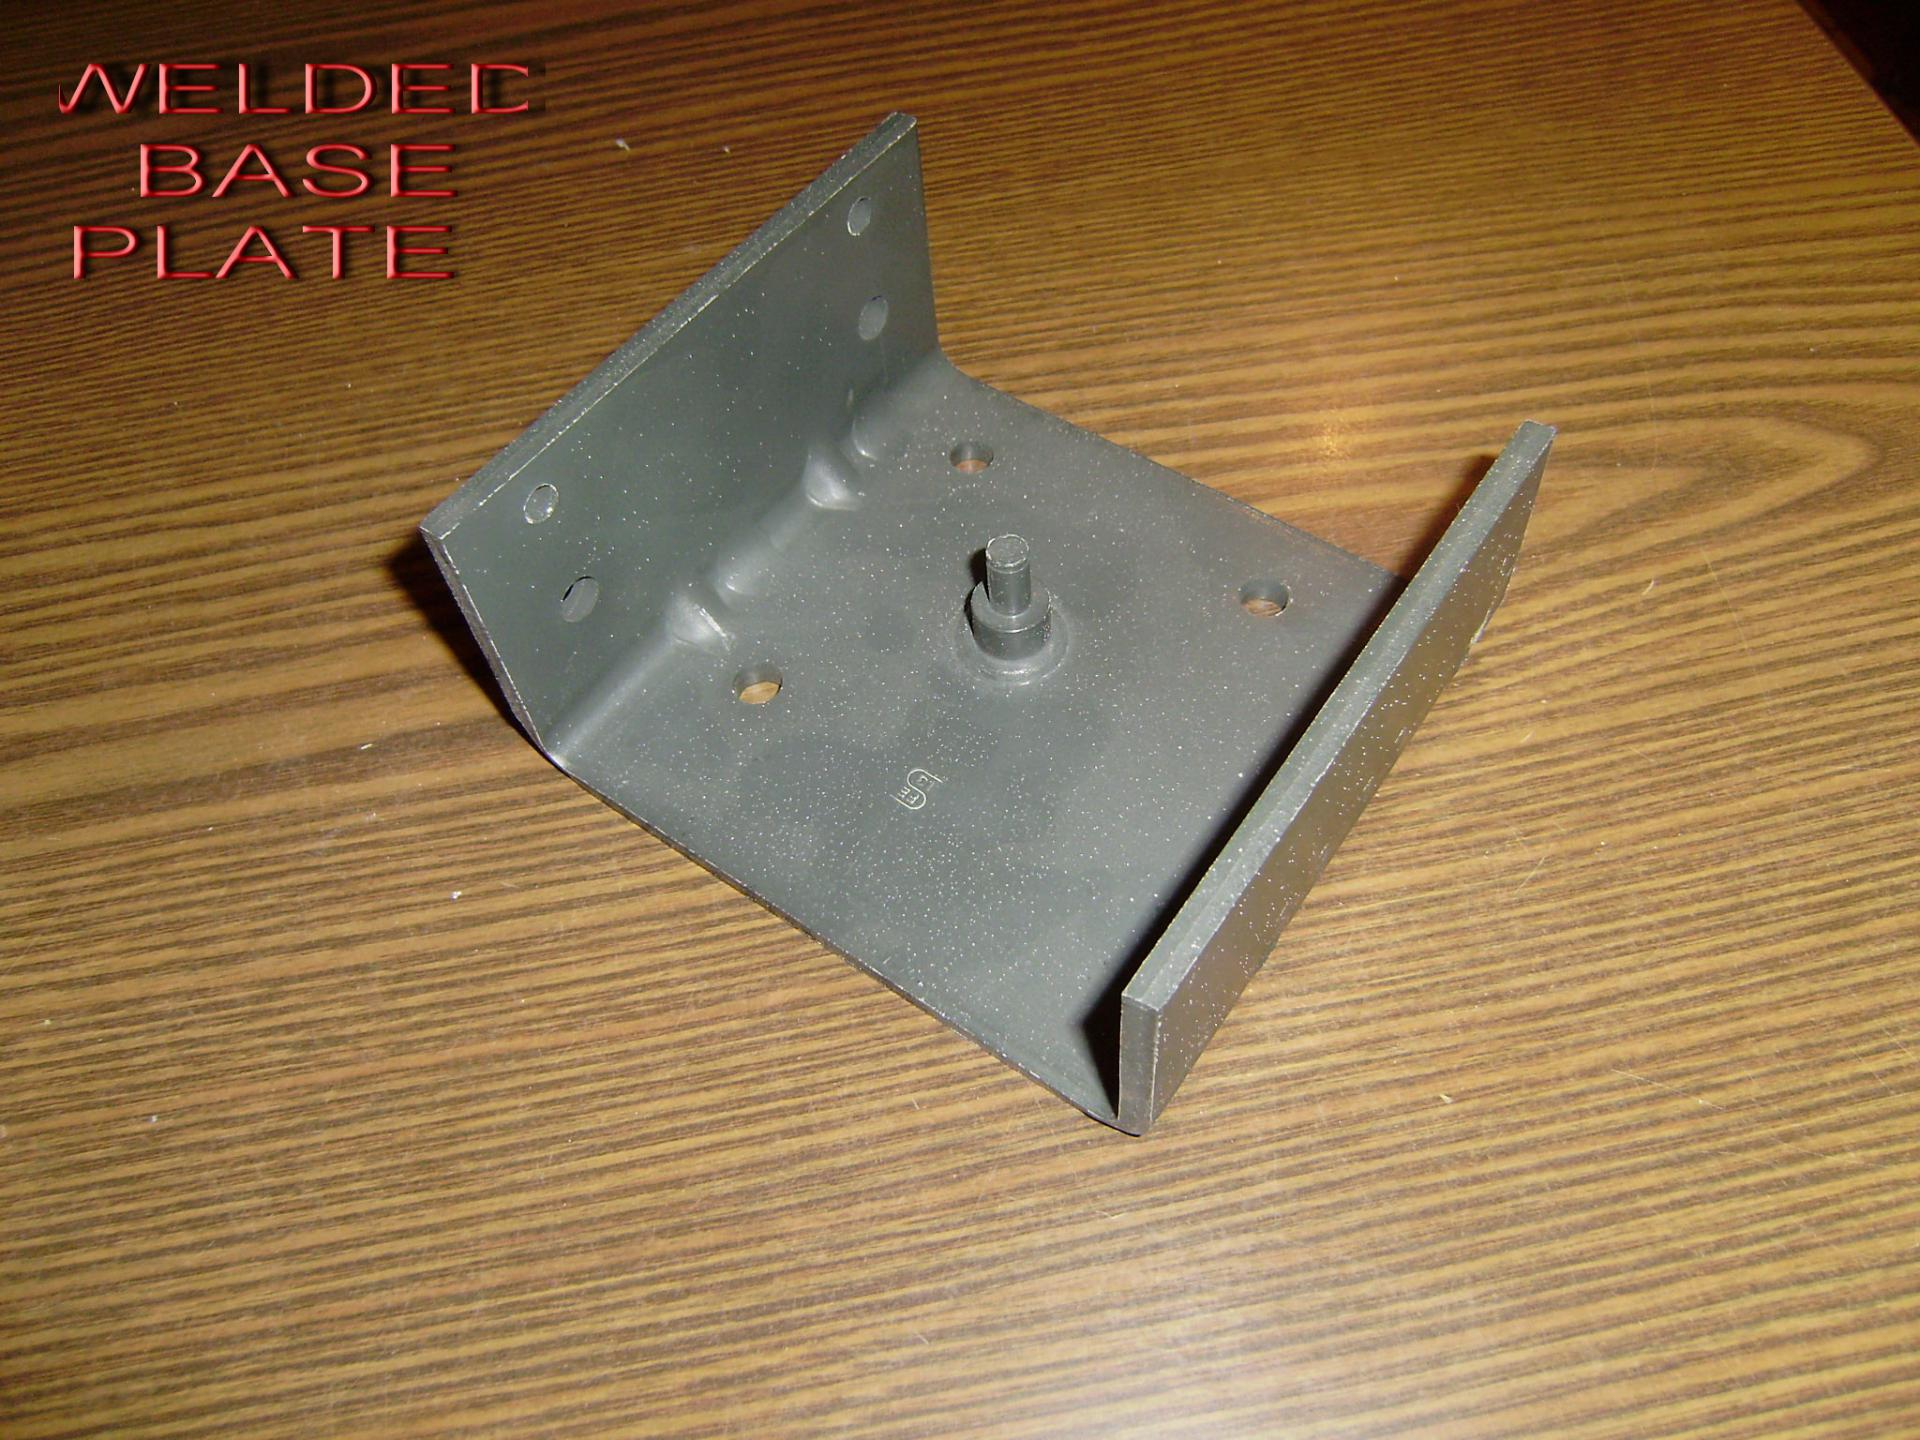 Welded stayplate